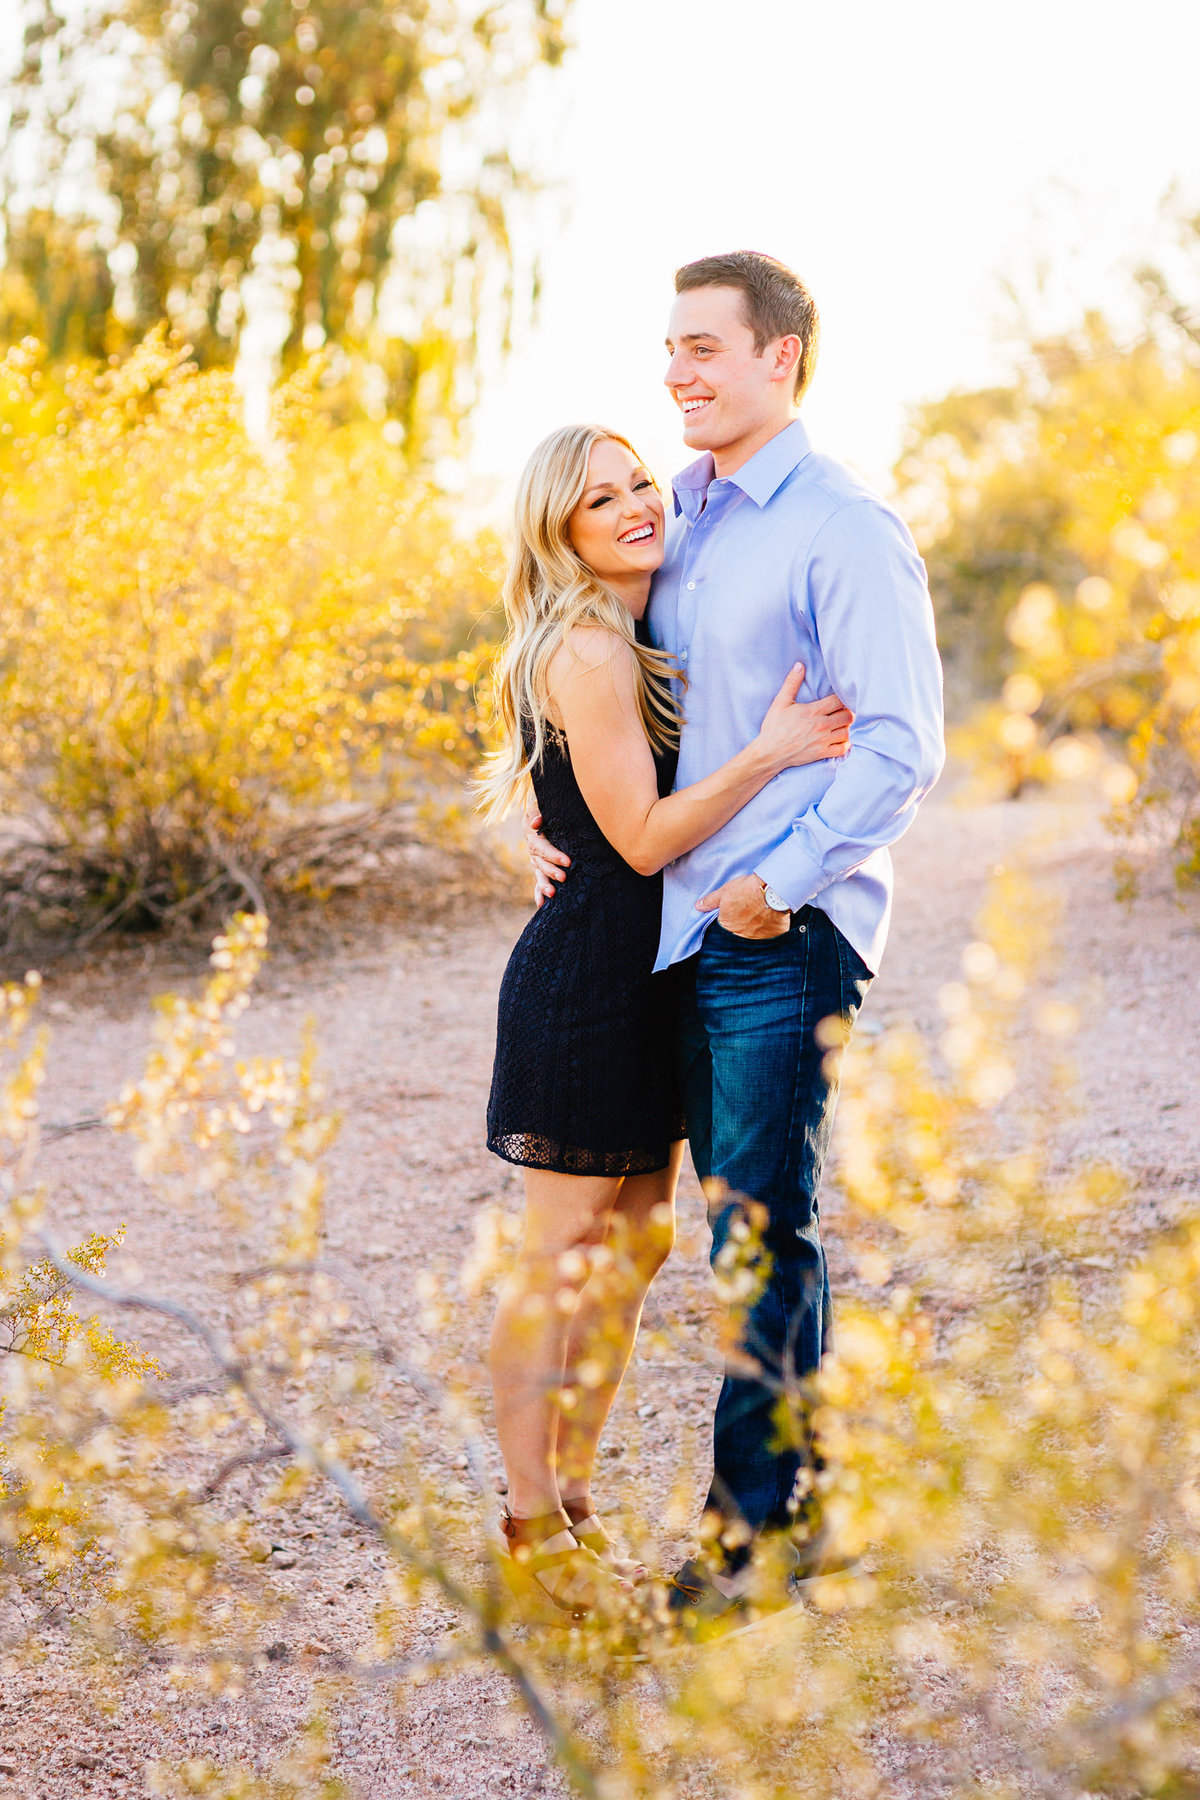 Rachel + Logan - Papago Park Engagement Session-1